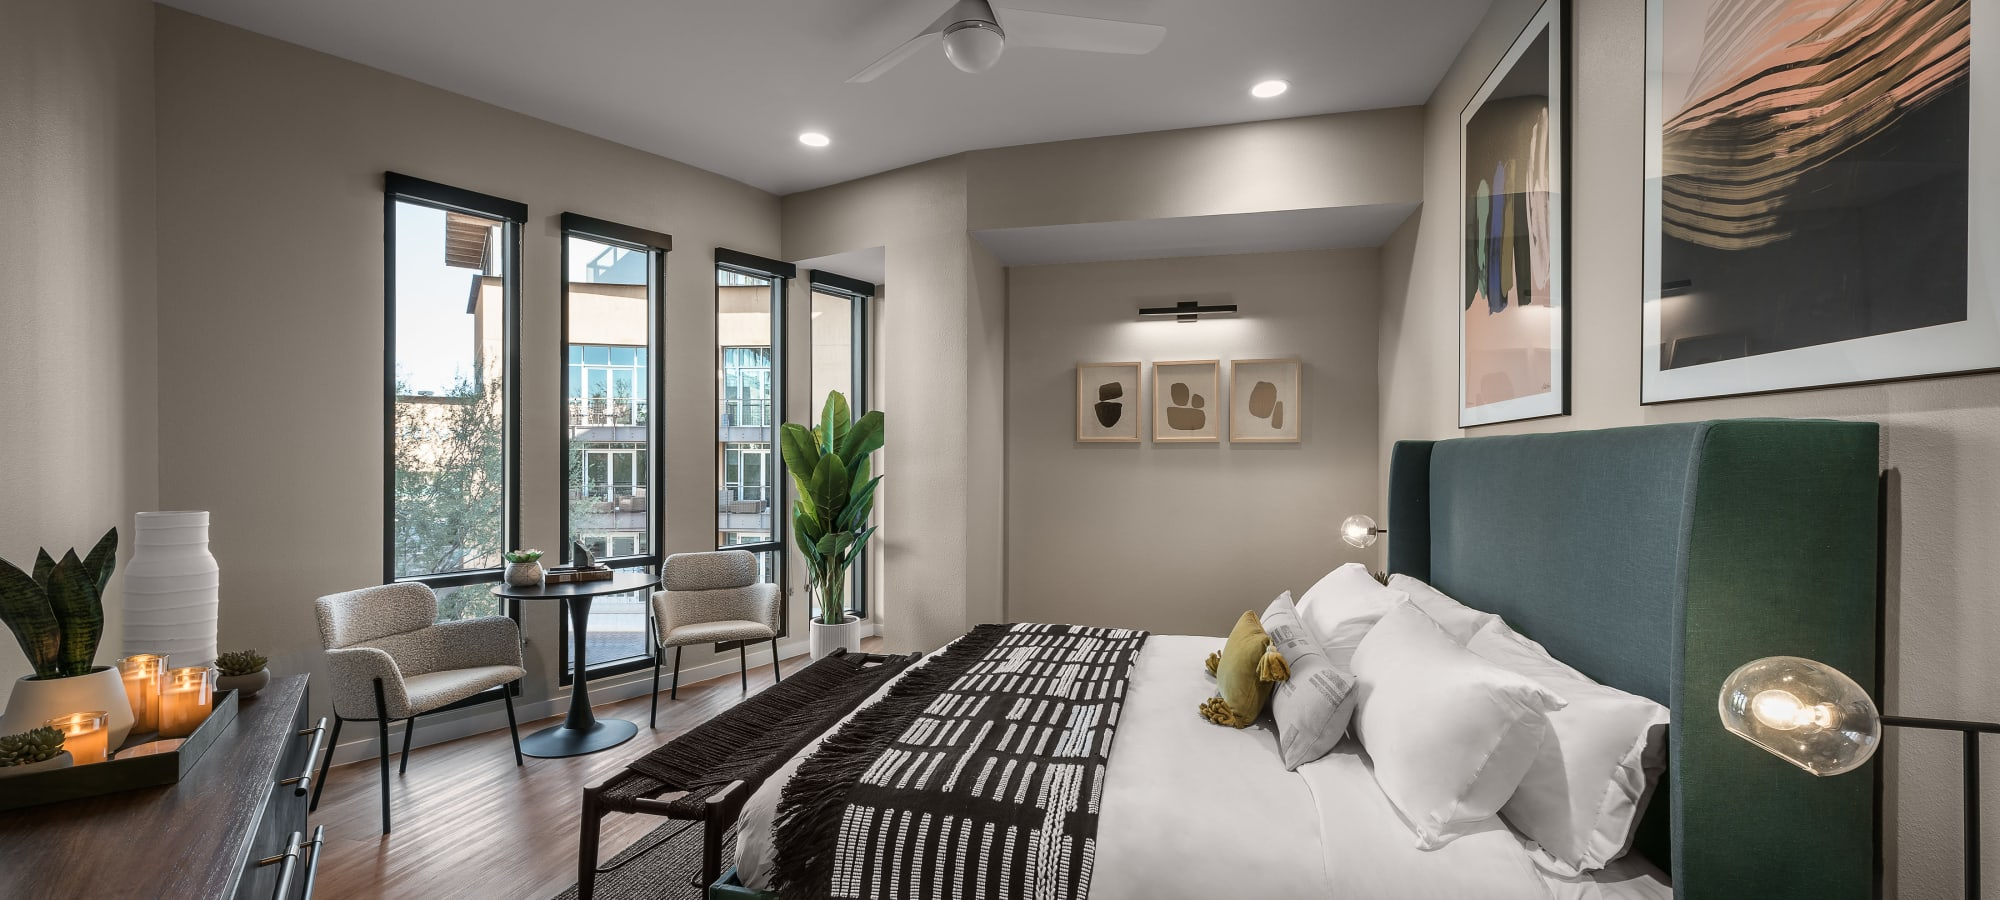 Comfortable guest suite at Gramercy Scottsdale in Scottsdale, Arizona